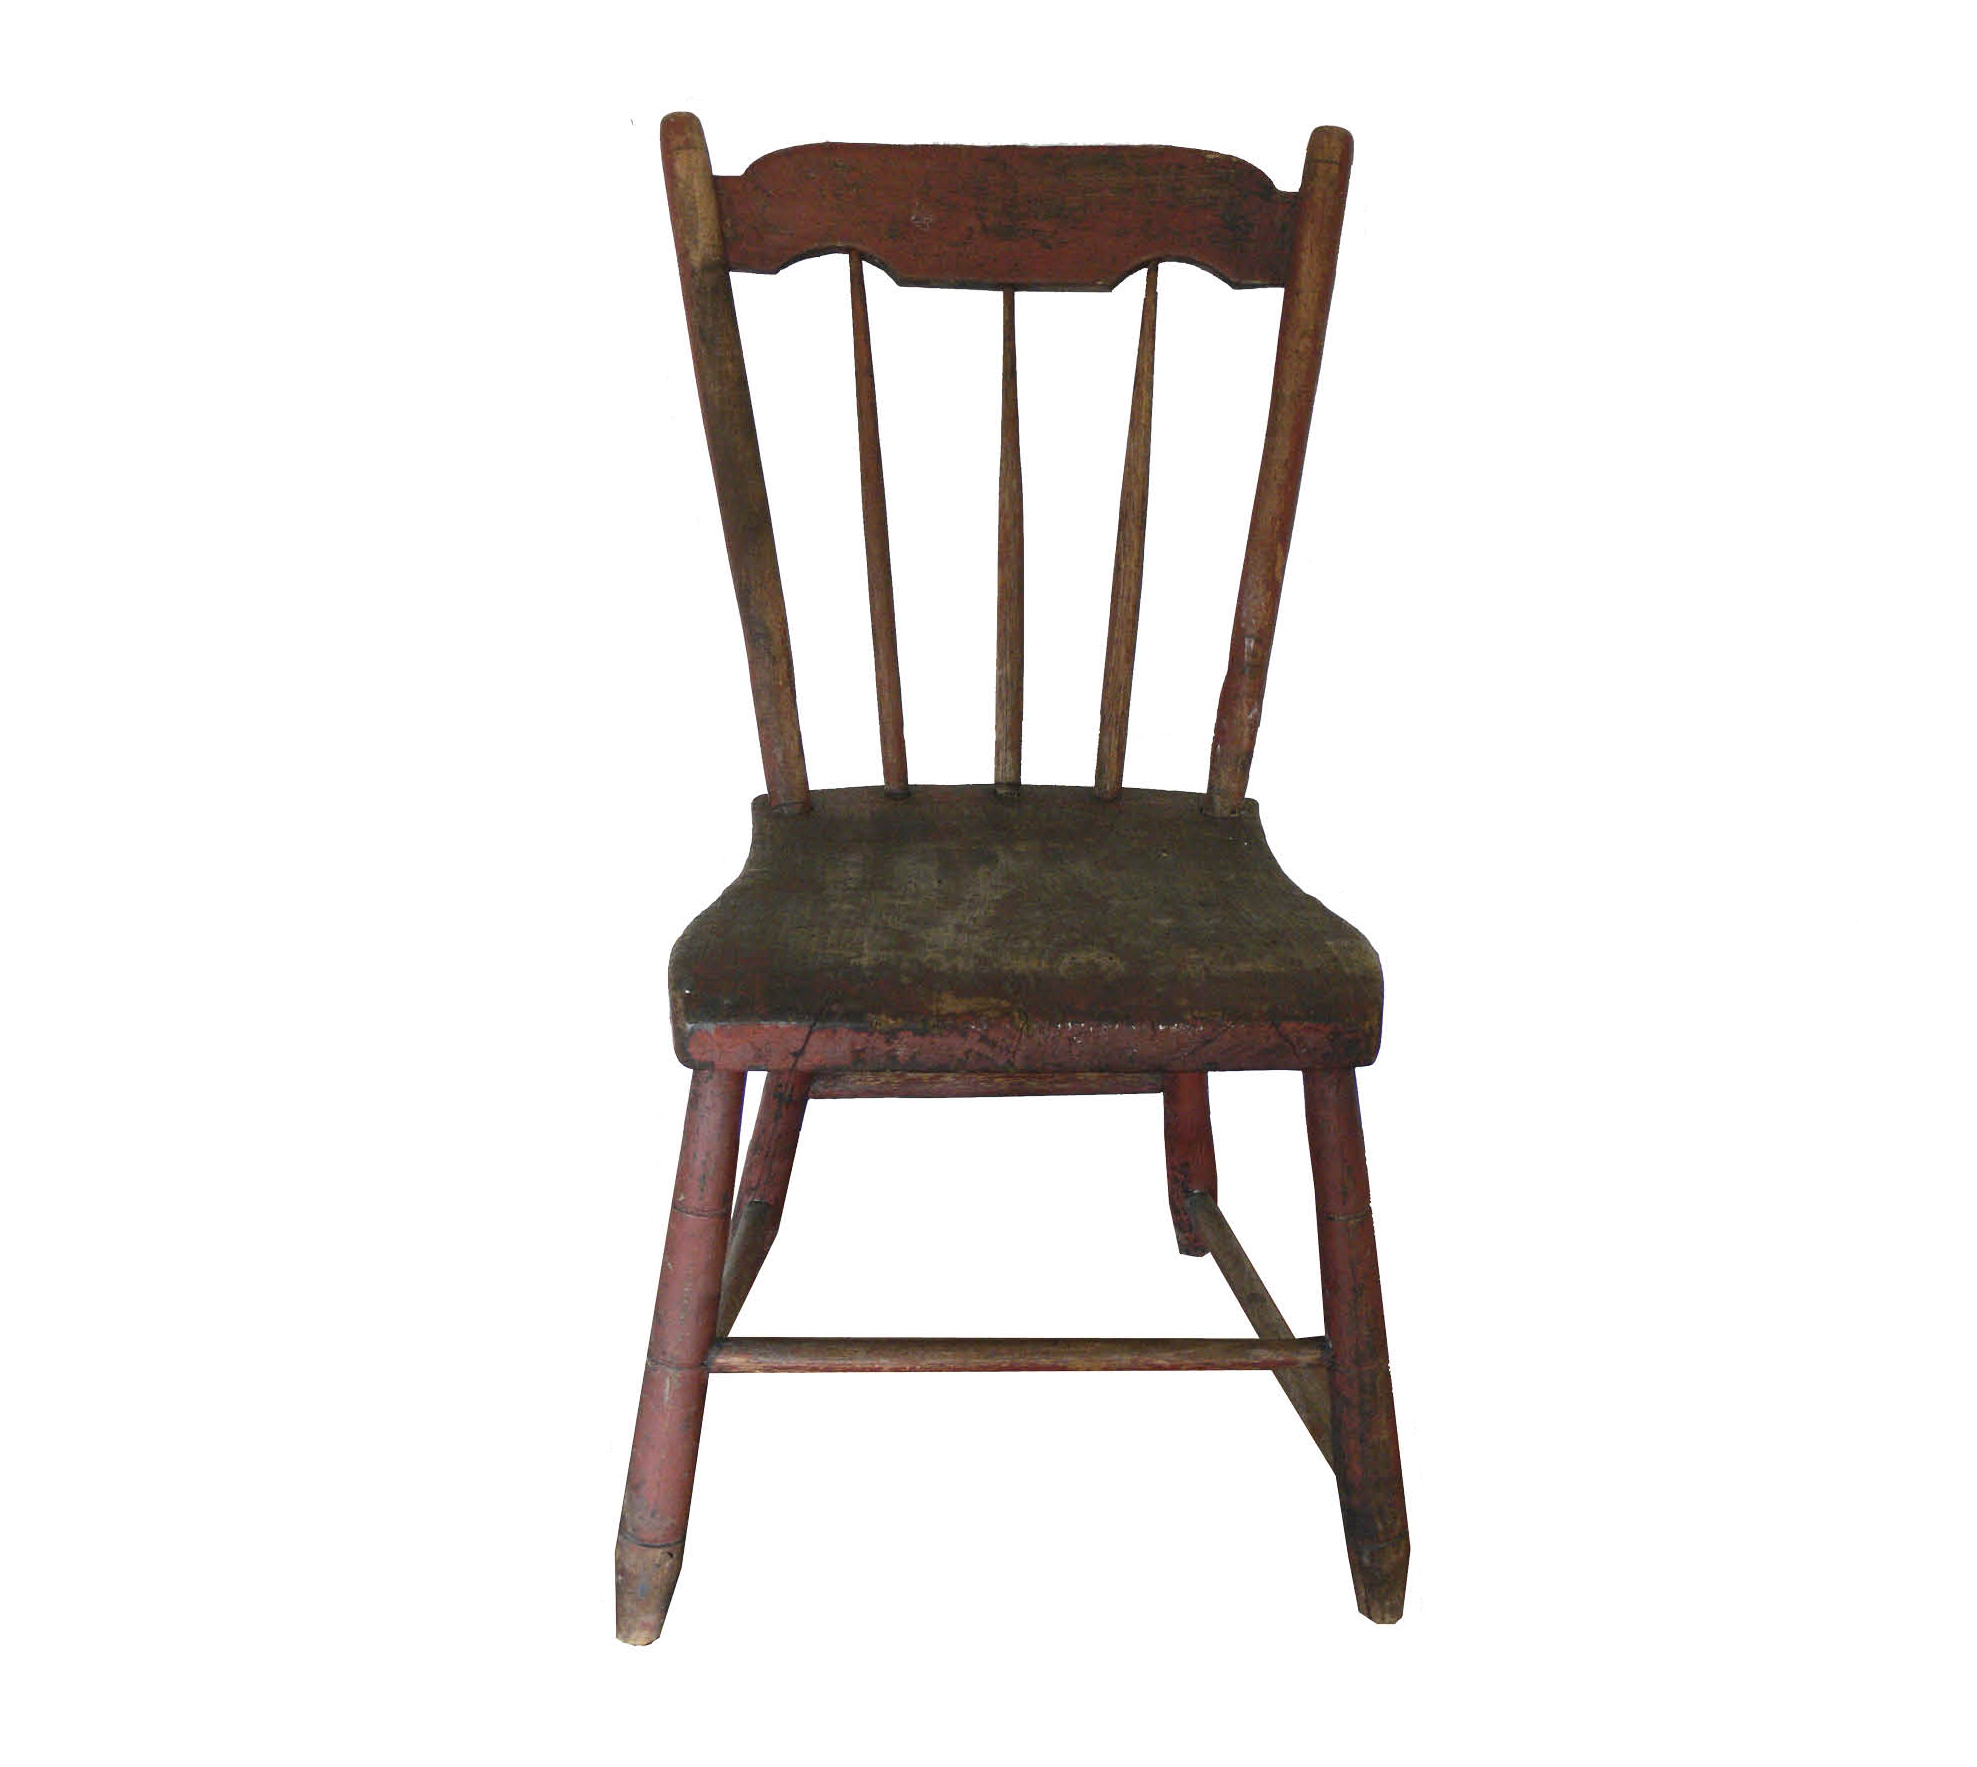 Figure 1:  Powwow Chair,  Late 19th century, Manheim, Lancaster Co. Thomas R. Brendle Museum Historic Schaefferstown.  A chair used specifically for powwowing, upon which patients were seated. Although appearing to be a normal chair in all respects, the following symbolism is attributed to it: The red paint symbolized the blood of Christ; the two arches in the cresting rail—the two tablets of the law given to Moses; the two large vertical stiles—the pillars of the church; the three vertical spindles—the apostle Paul, Jesus and Peter, the Rock; the front lower stretcher—the Judas the betrayer (upon which the patient should rest her right foot in disdain); the three rings on the legs—the Holy Trinity; and the low construction of the chair was to humble the patient to receive healing.